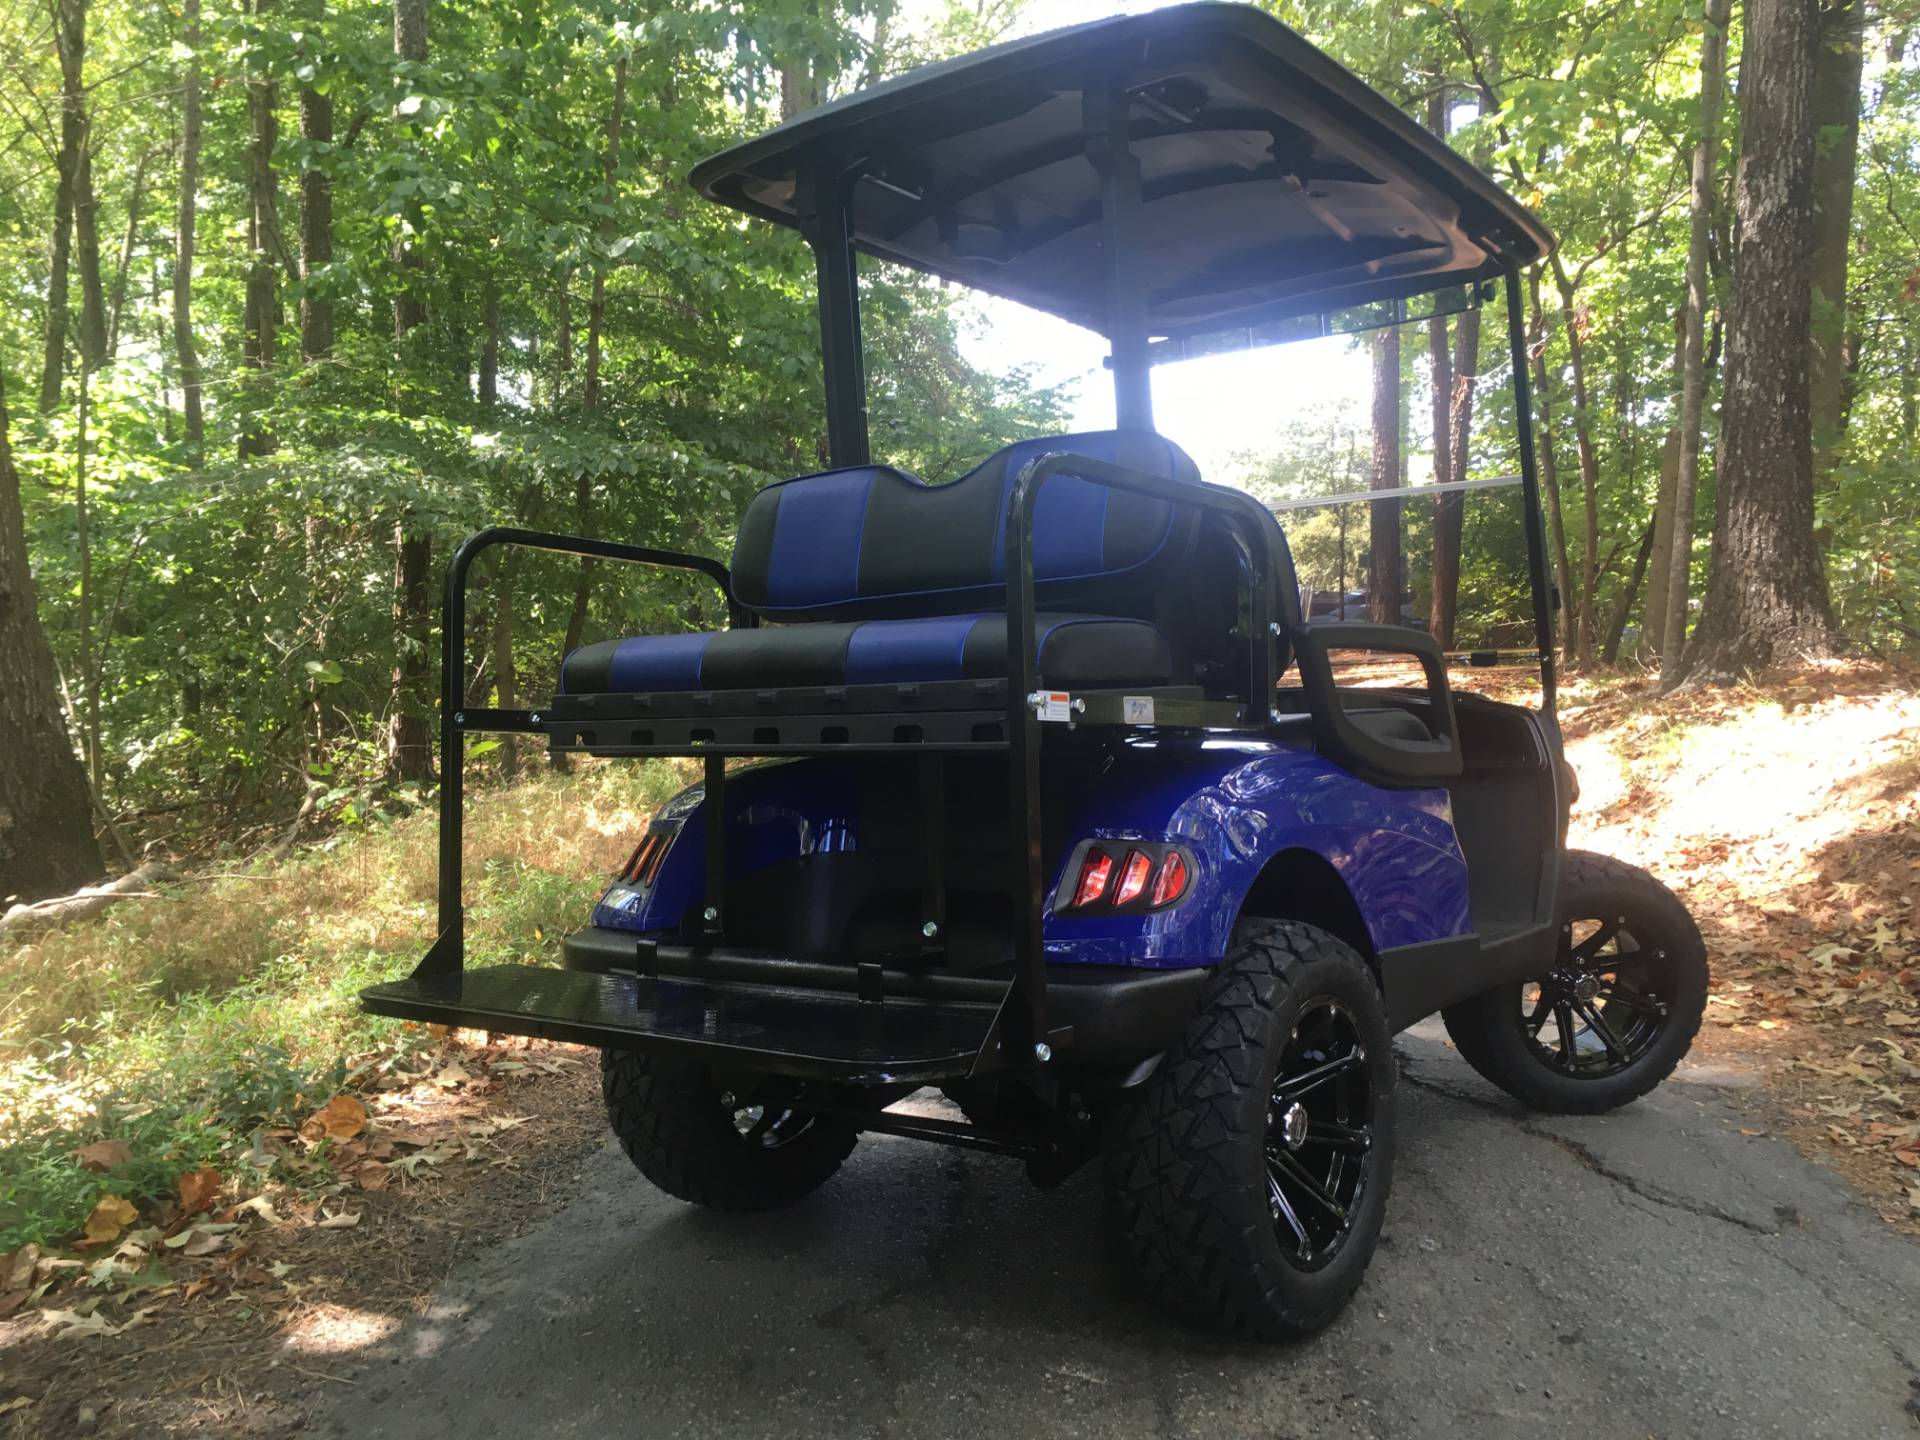 2016 YAMAHA DRIVE G-29 in Woodstock, Georgia - Photo 4